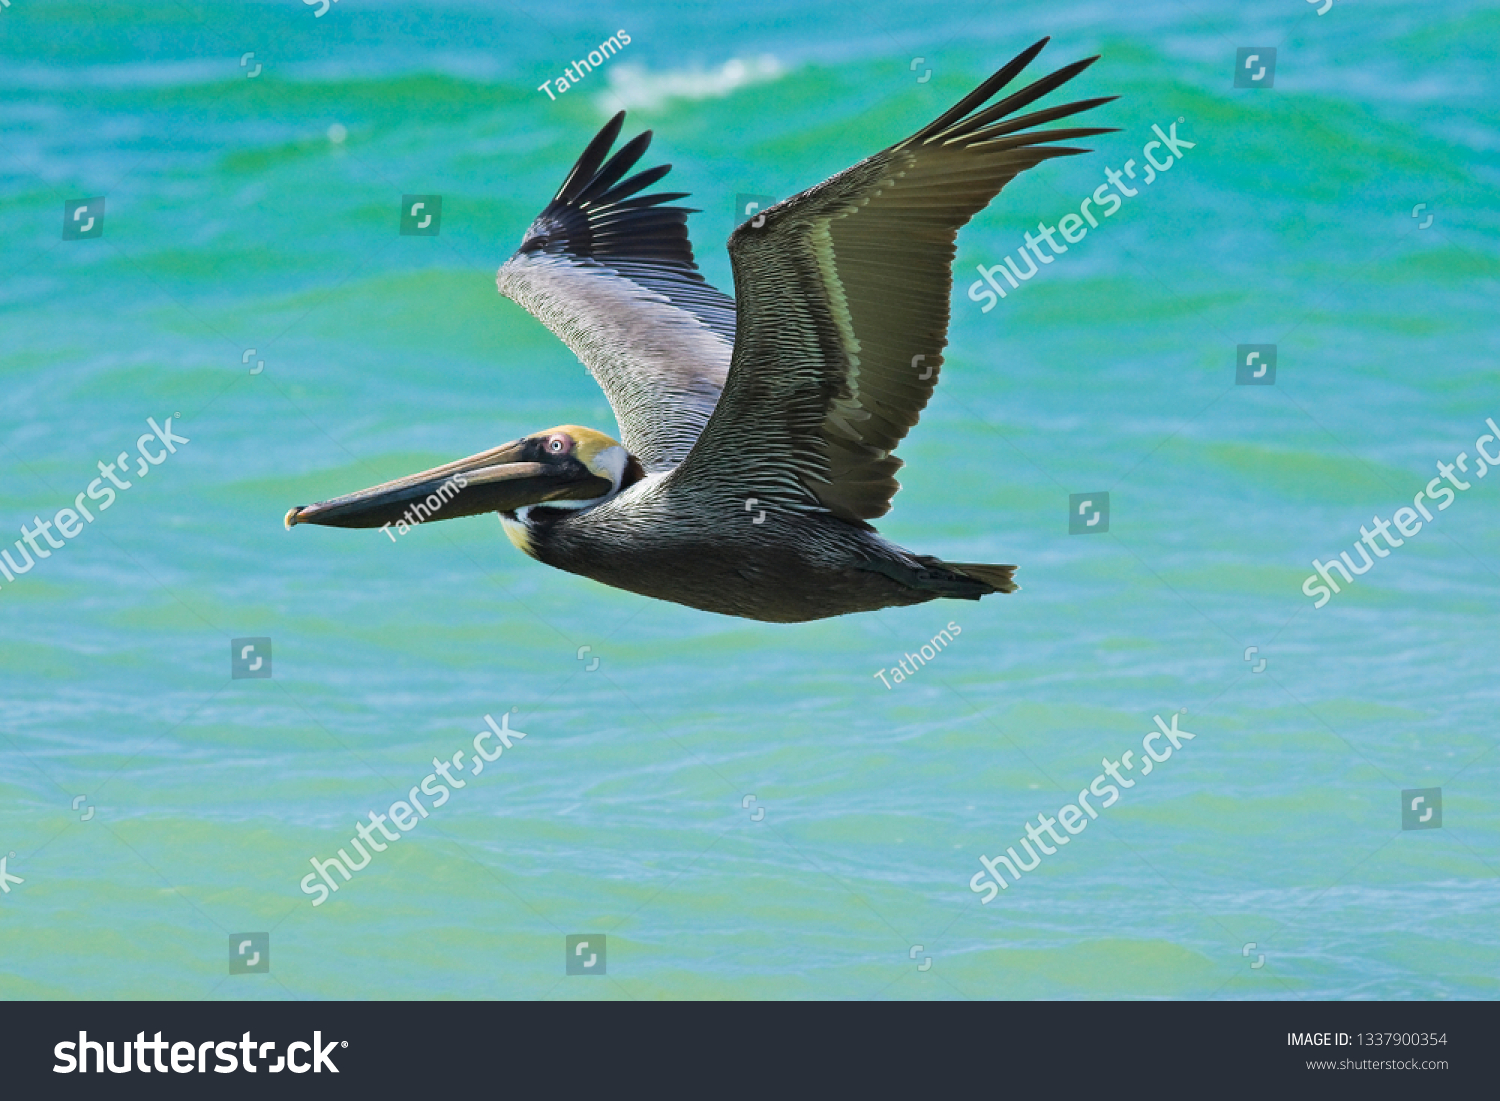 stock-photo-flying-with-pelican-13379003